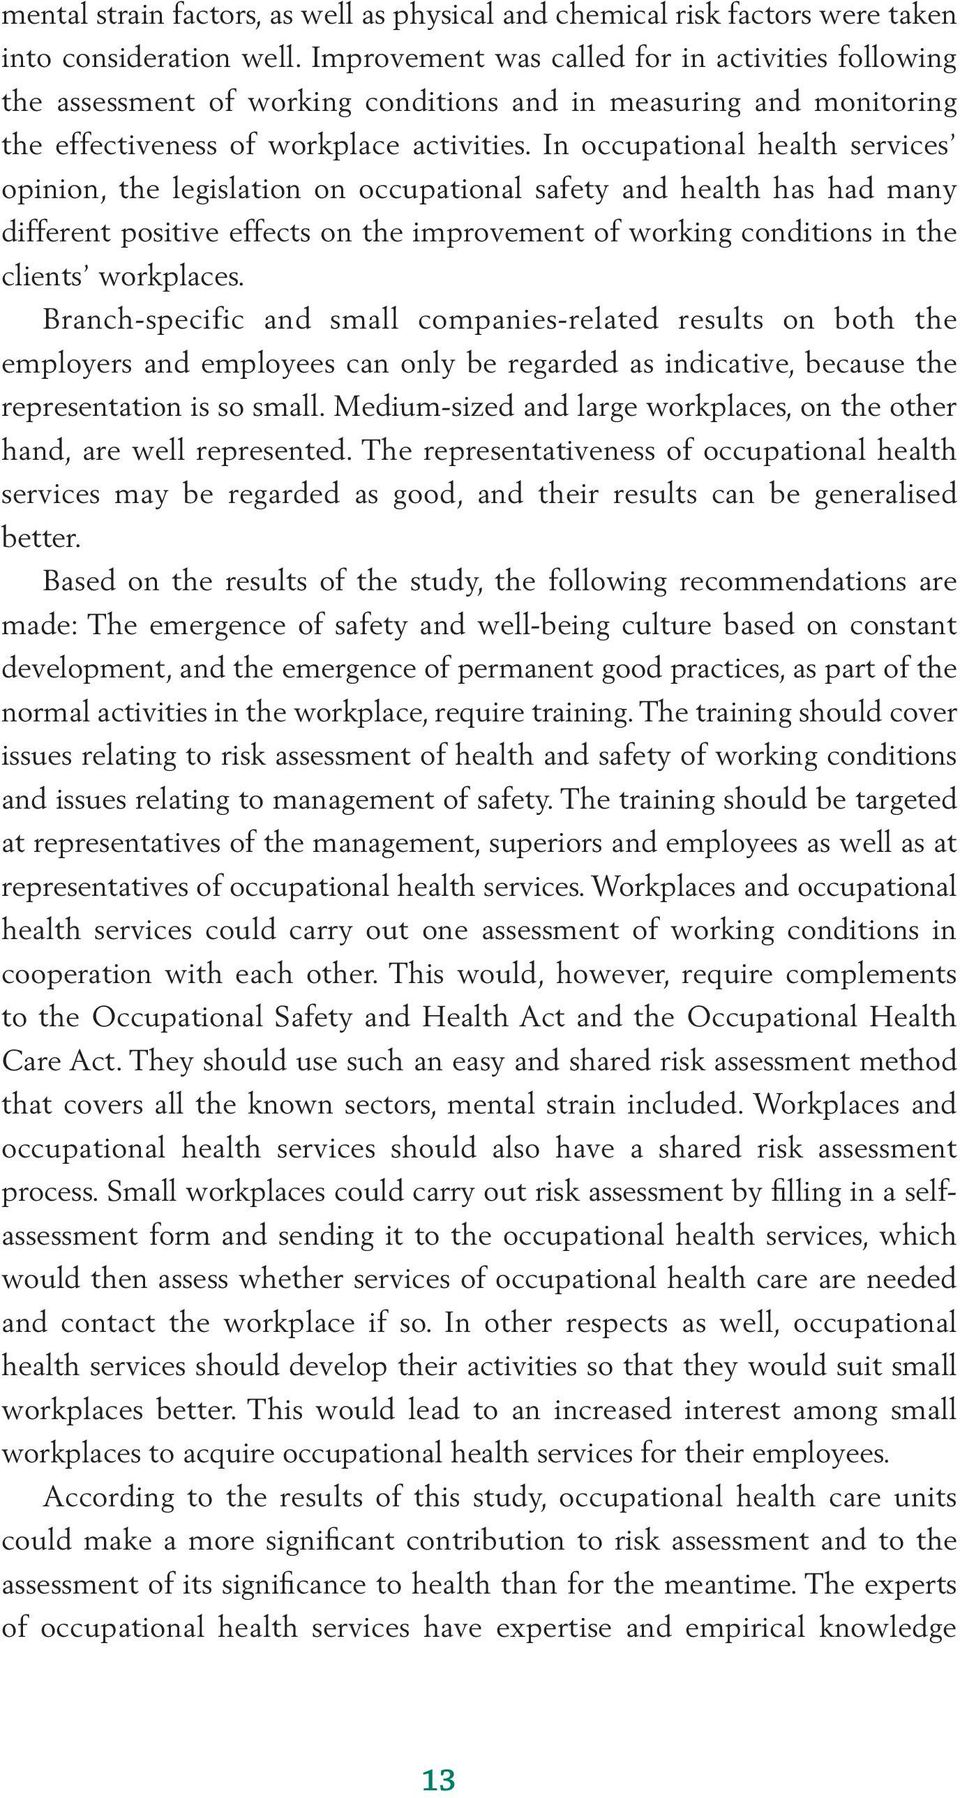 In occupational health services opinion, the legislation on occupational safety and health has had many different positive effects on the improvement of working conditions in the clients workplaces.